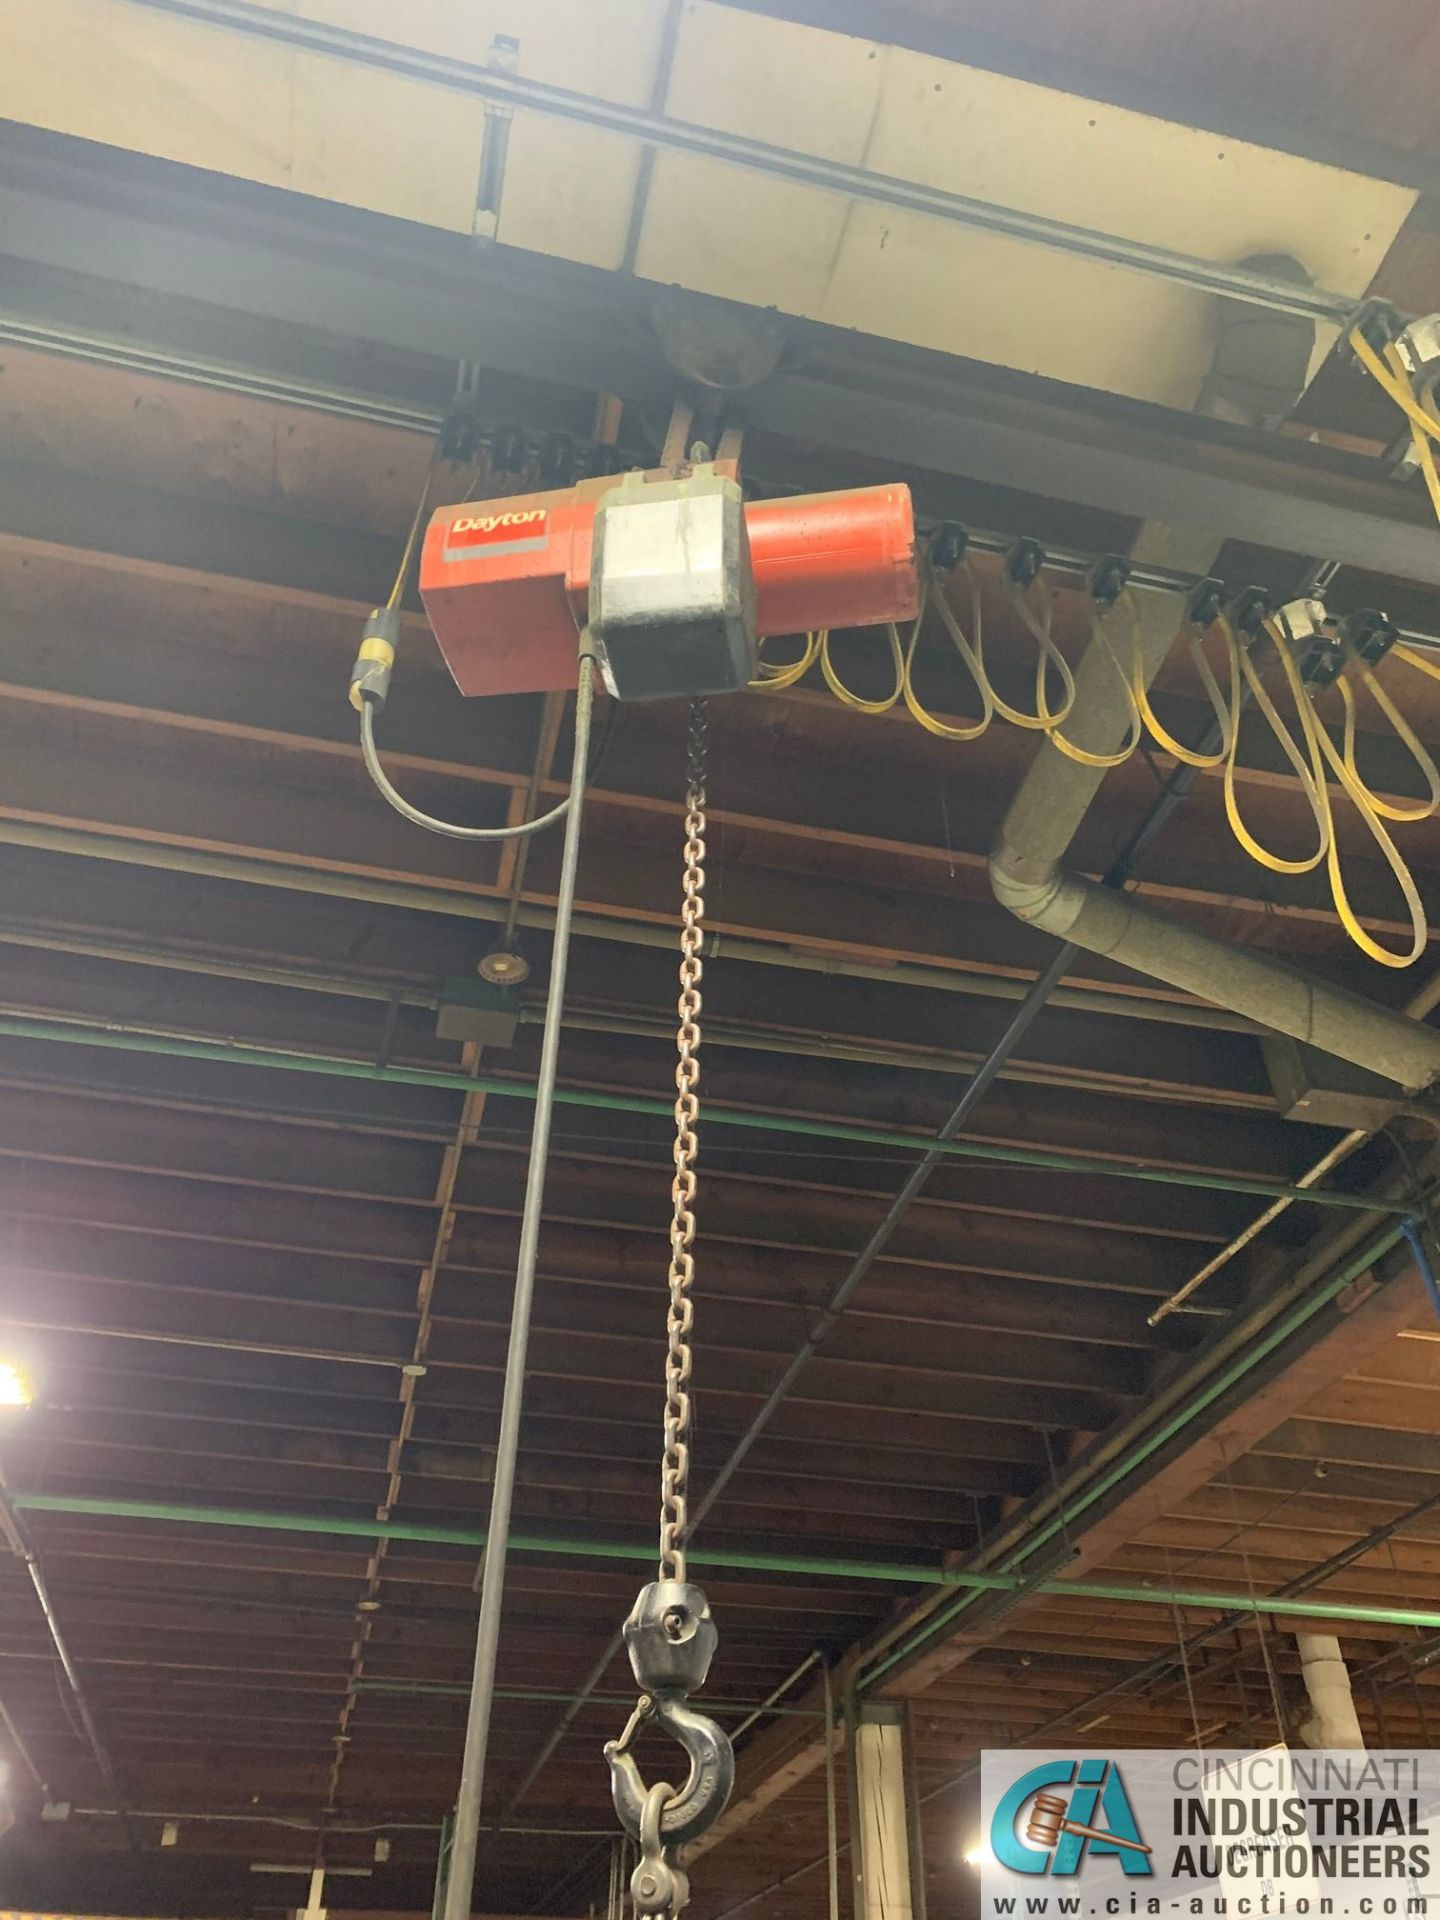 1/2 HP DAYTON PENDANT CONTROL CHAIN HOIST WITH TROLLEY - Image 3 of 3